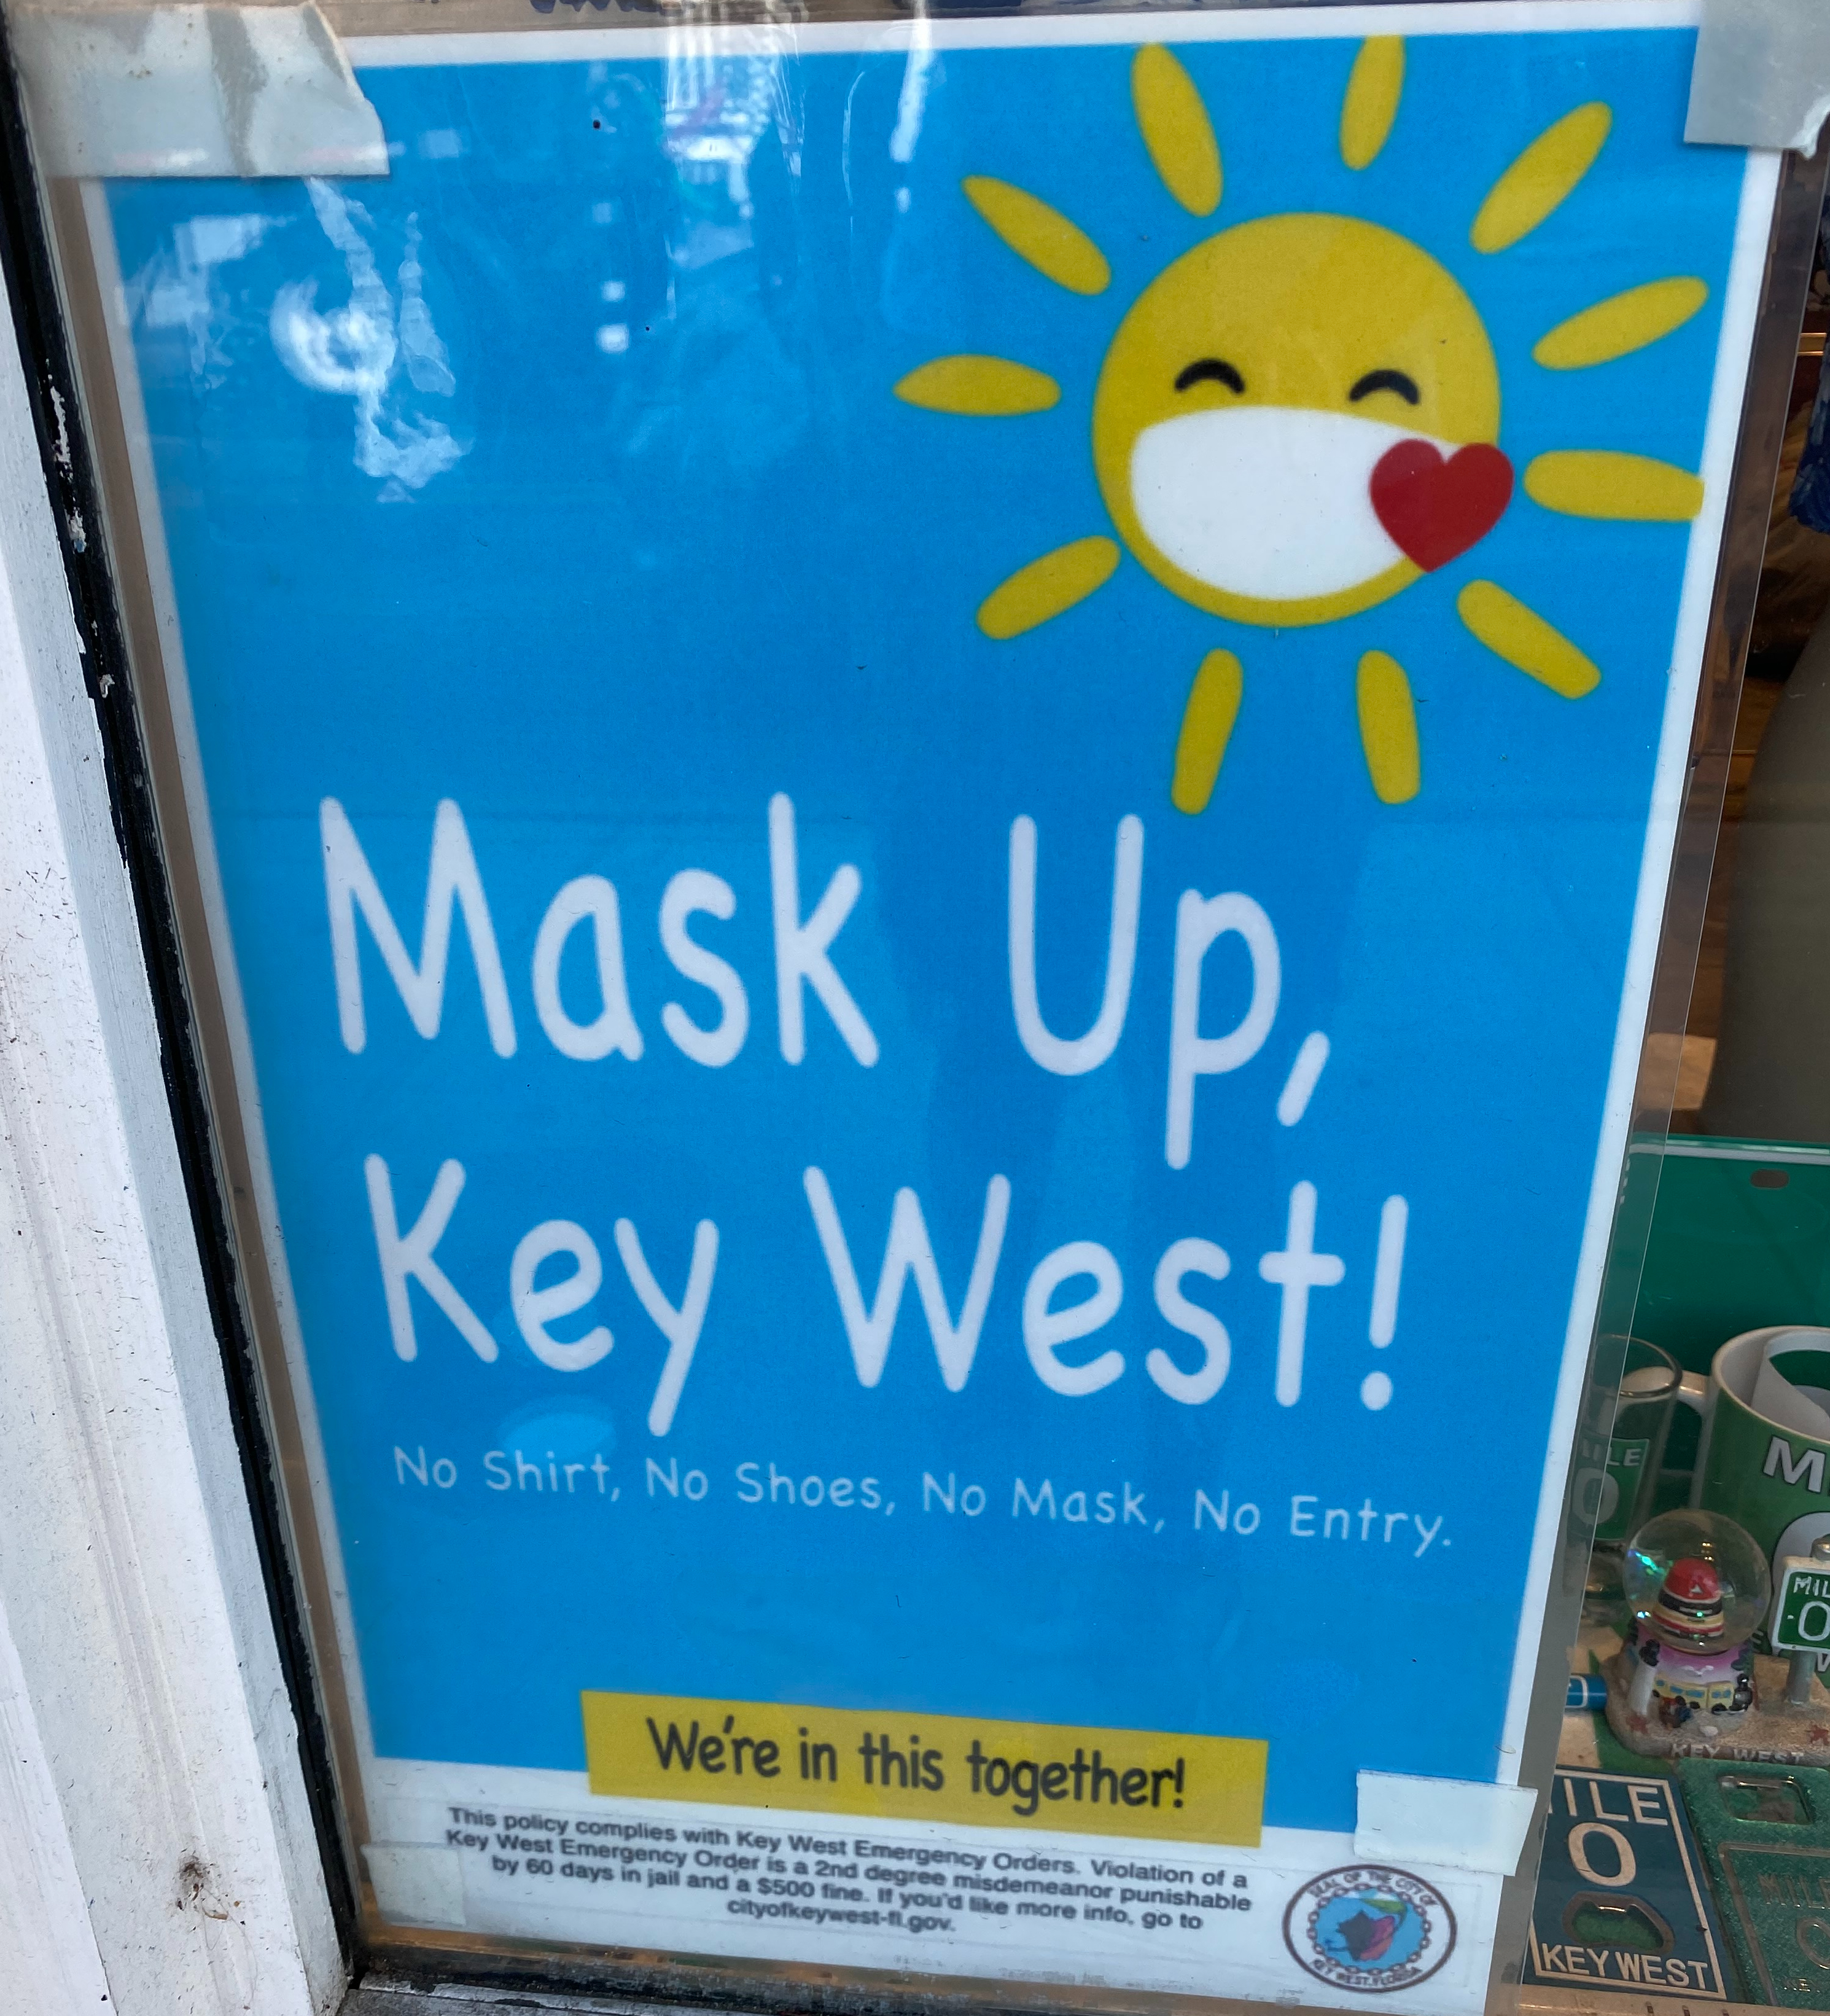 Key West was serious about social distancing and masks.